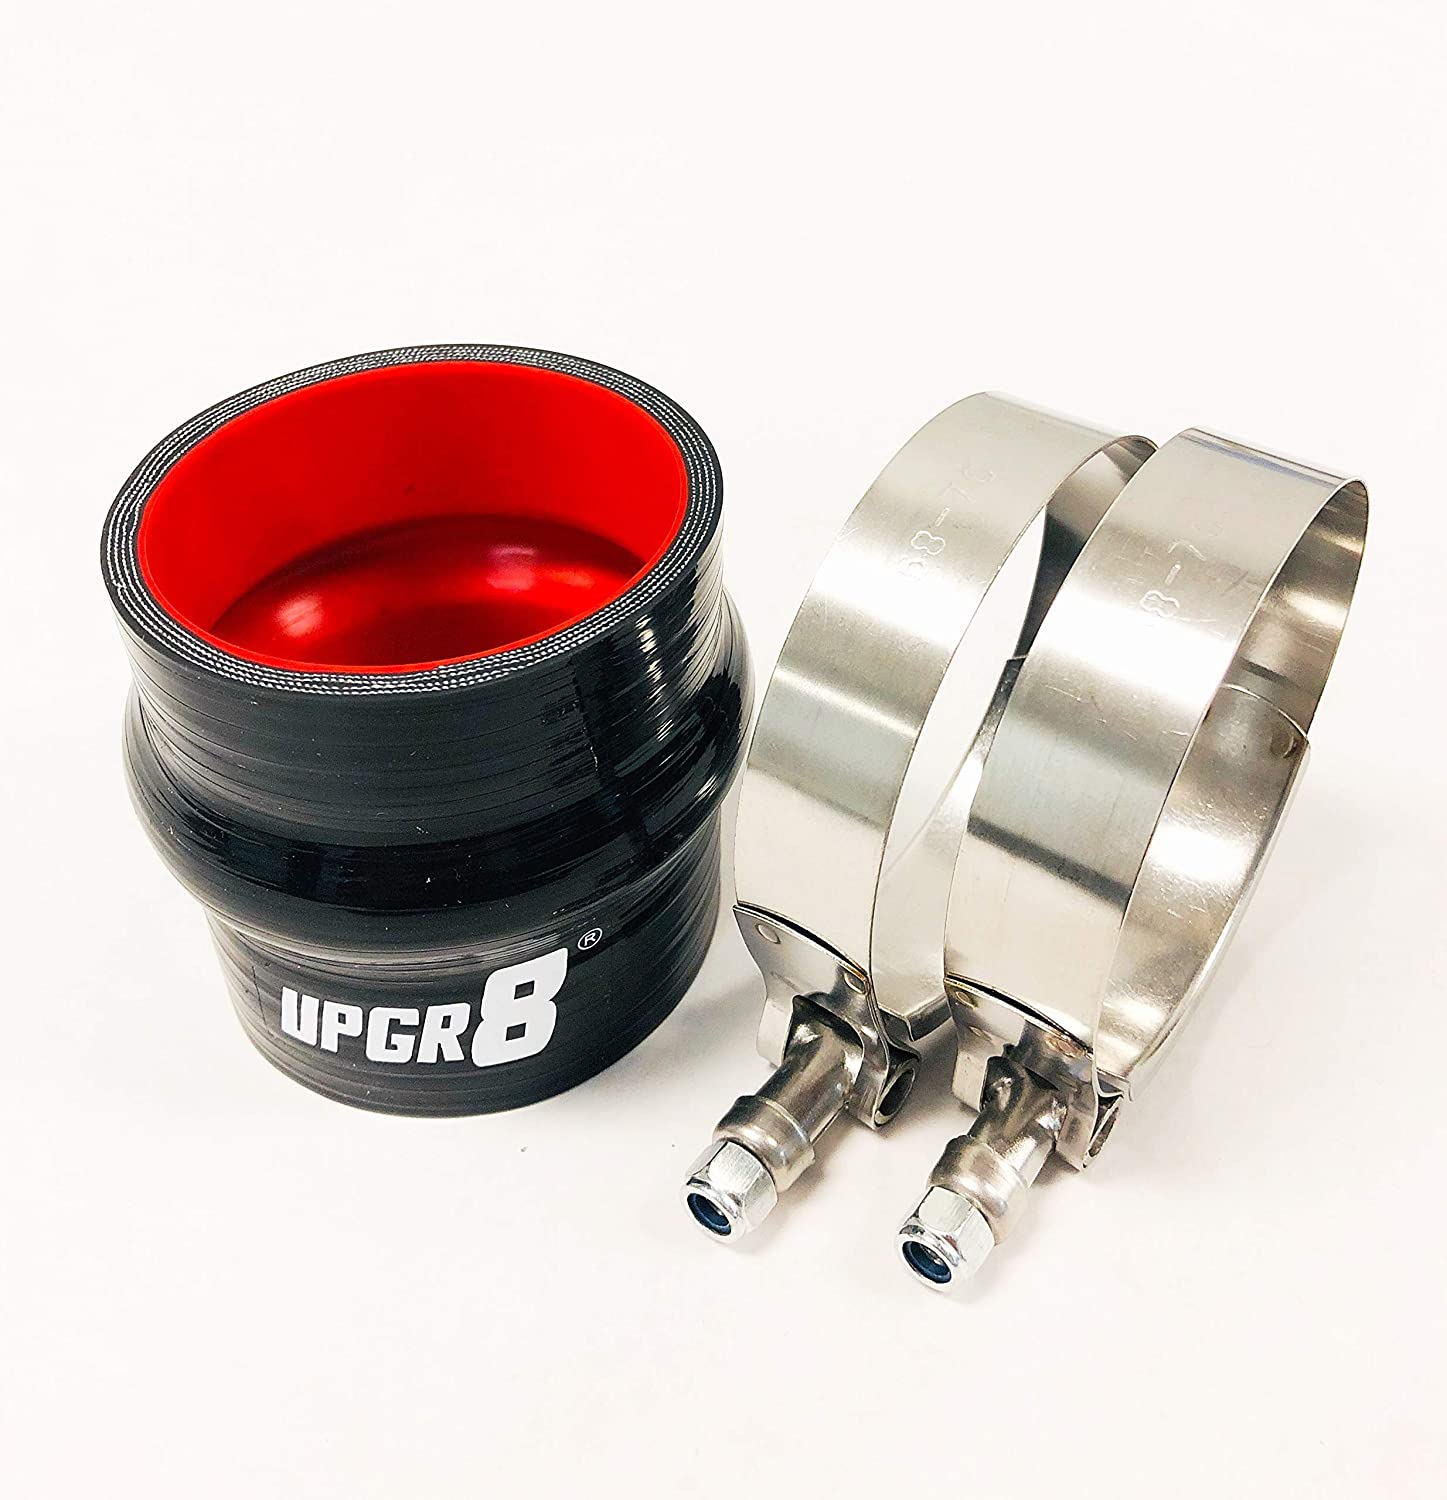 Upgr8 Universal 4-Ply High Performance 2.25 Straight Hump Coupler Silicone Hose 57mm T Bolt Clamp 2.25 Red